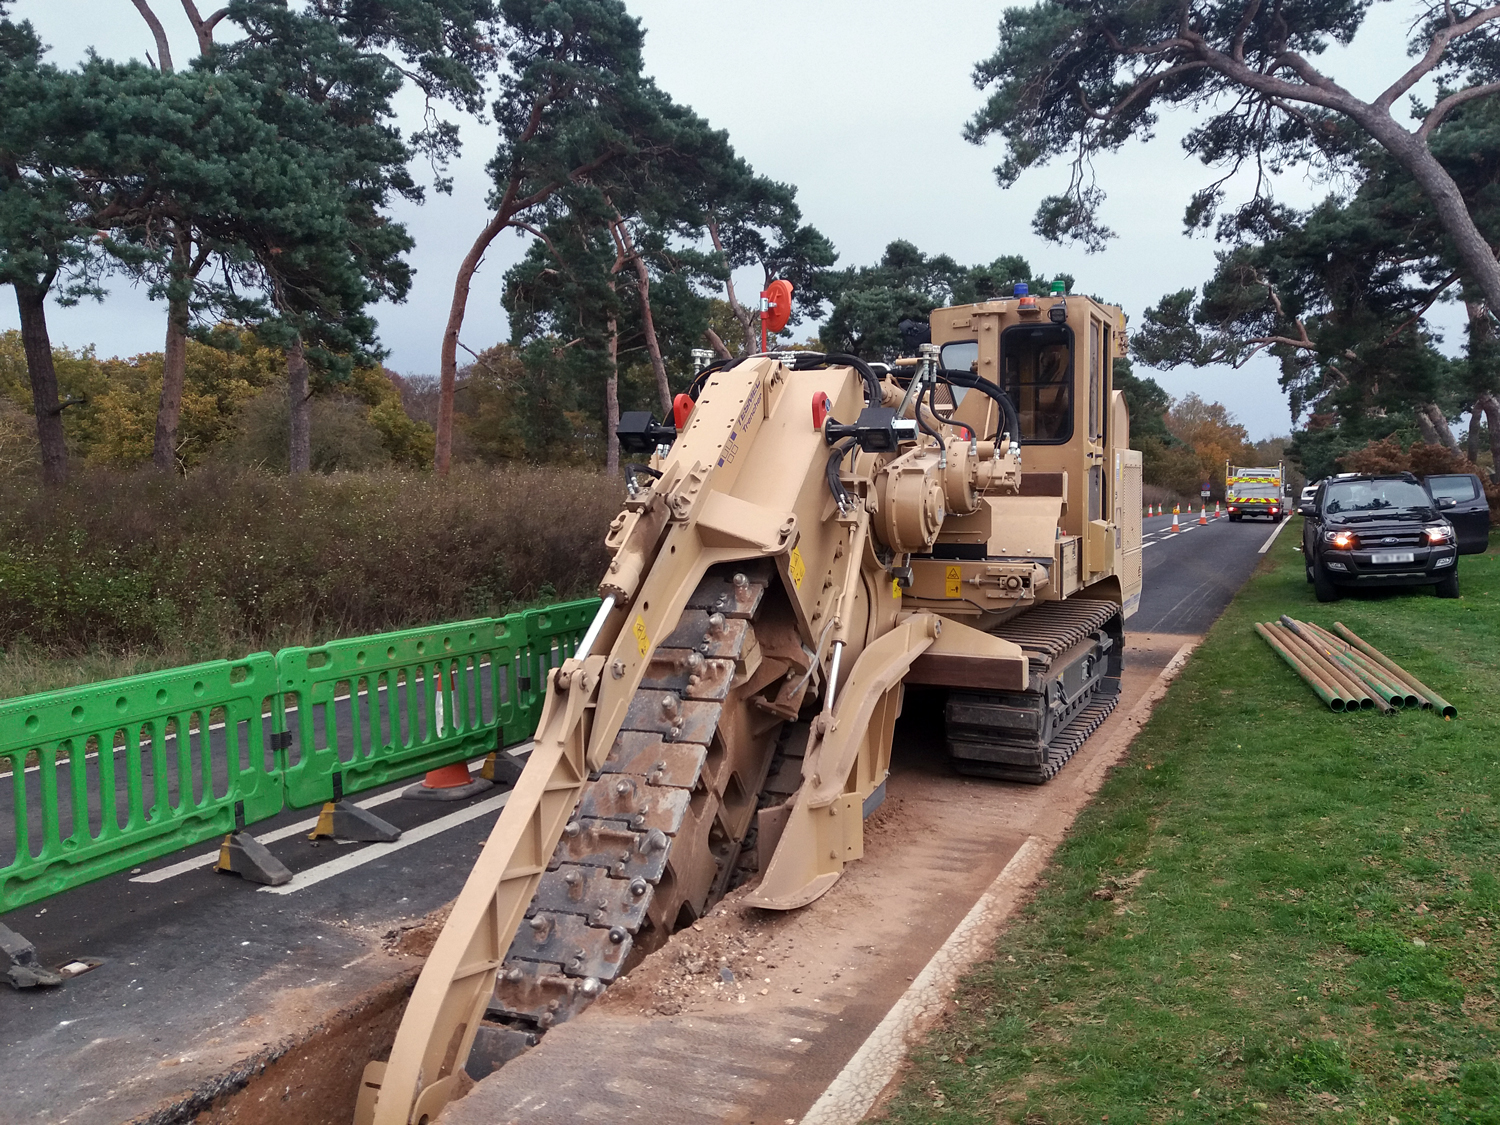 Tesmec 985 Chainsaw Trencher conceived to satisfy all ranges of customers